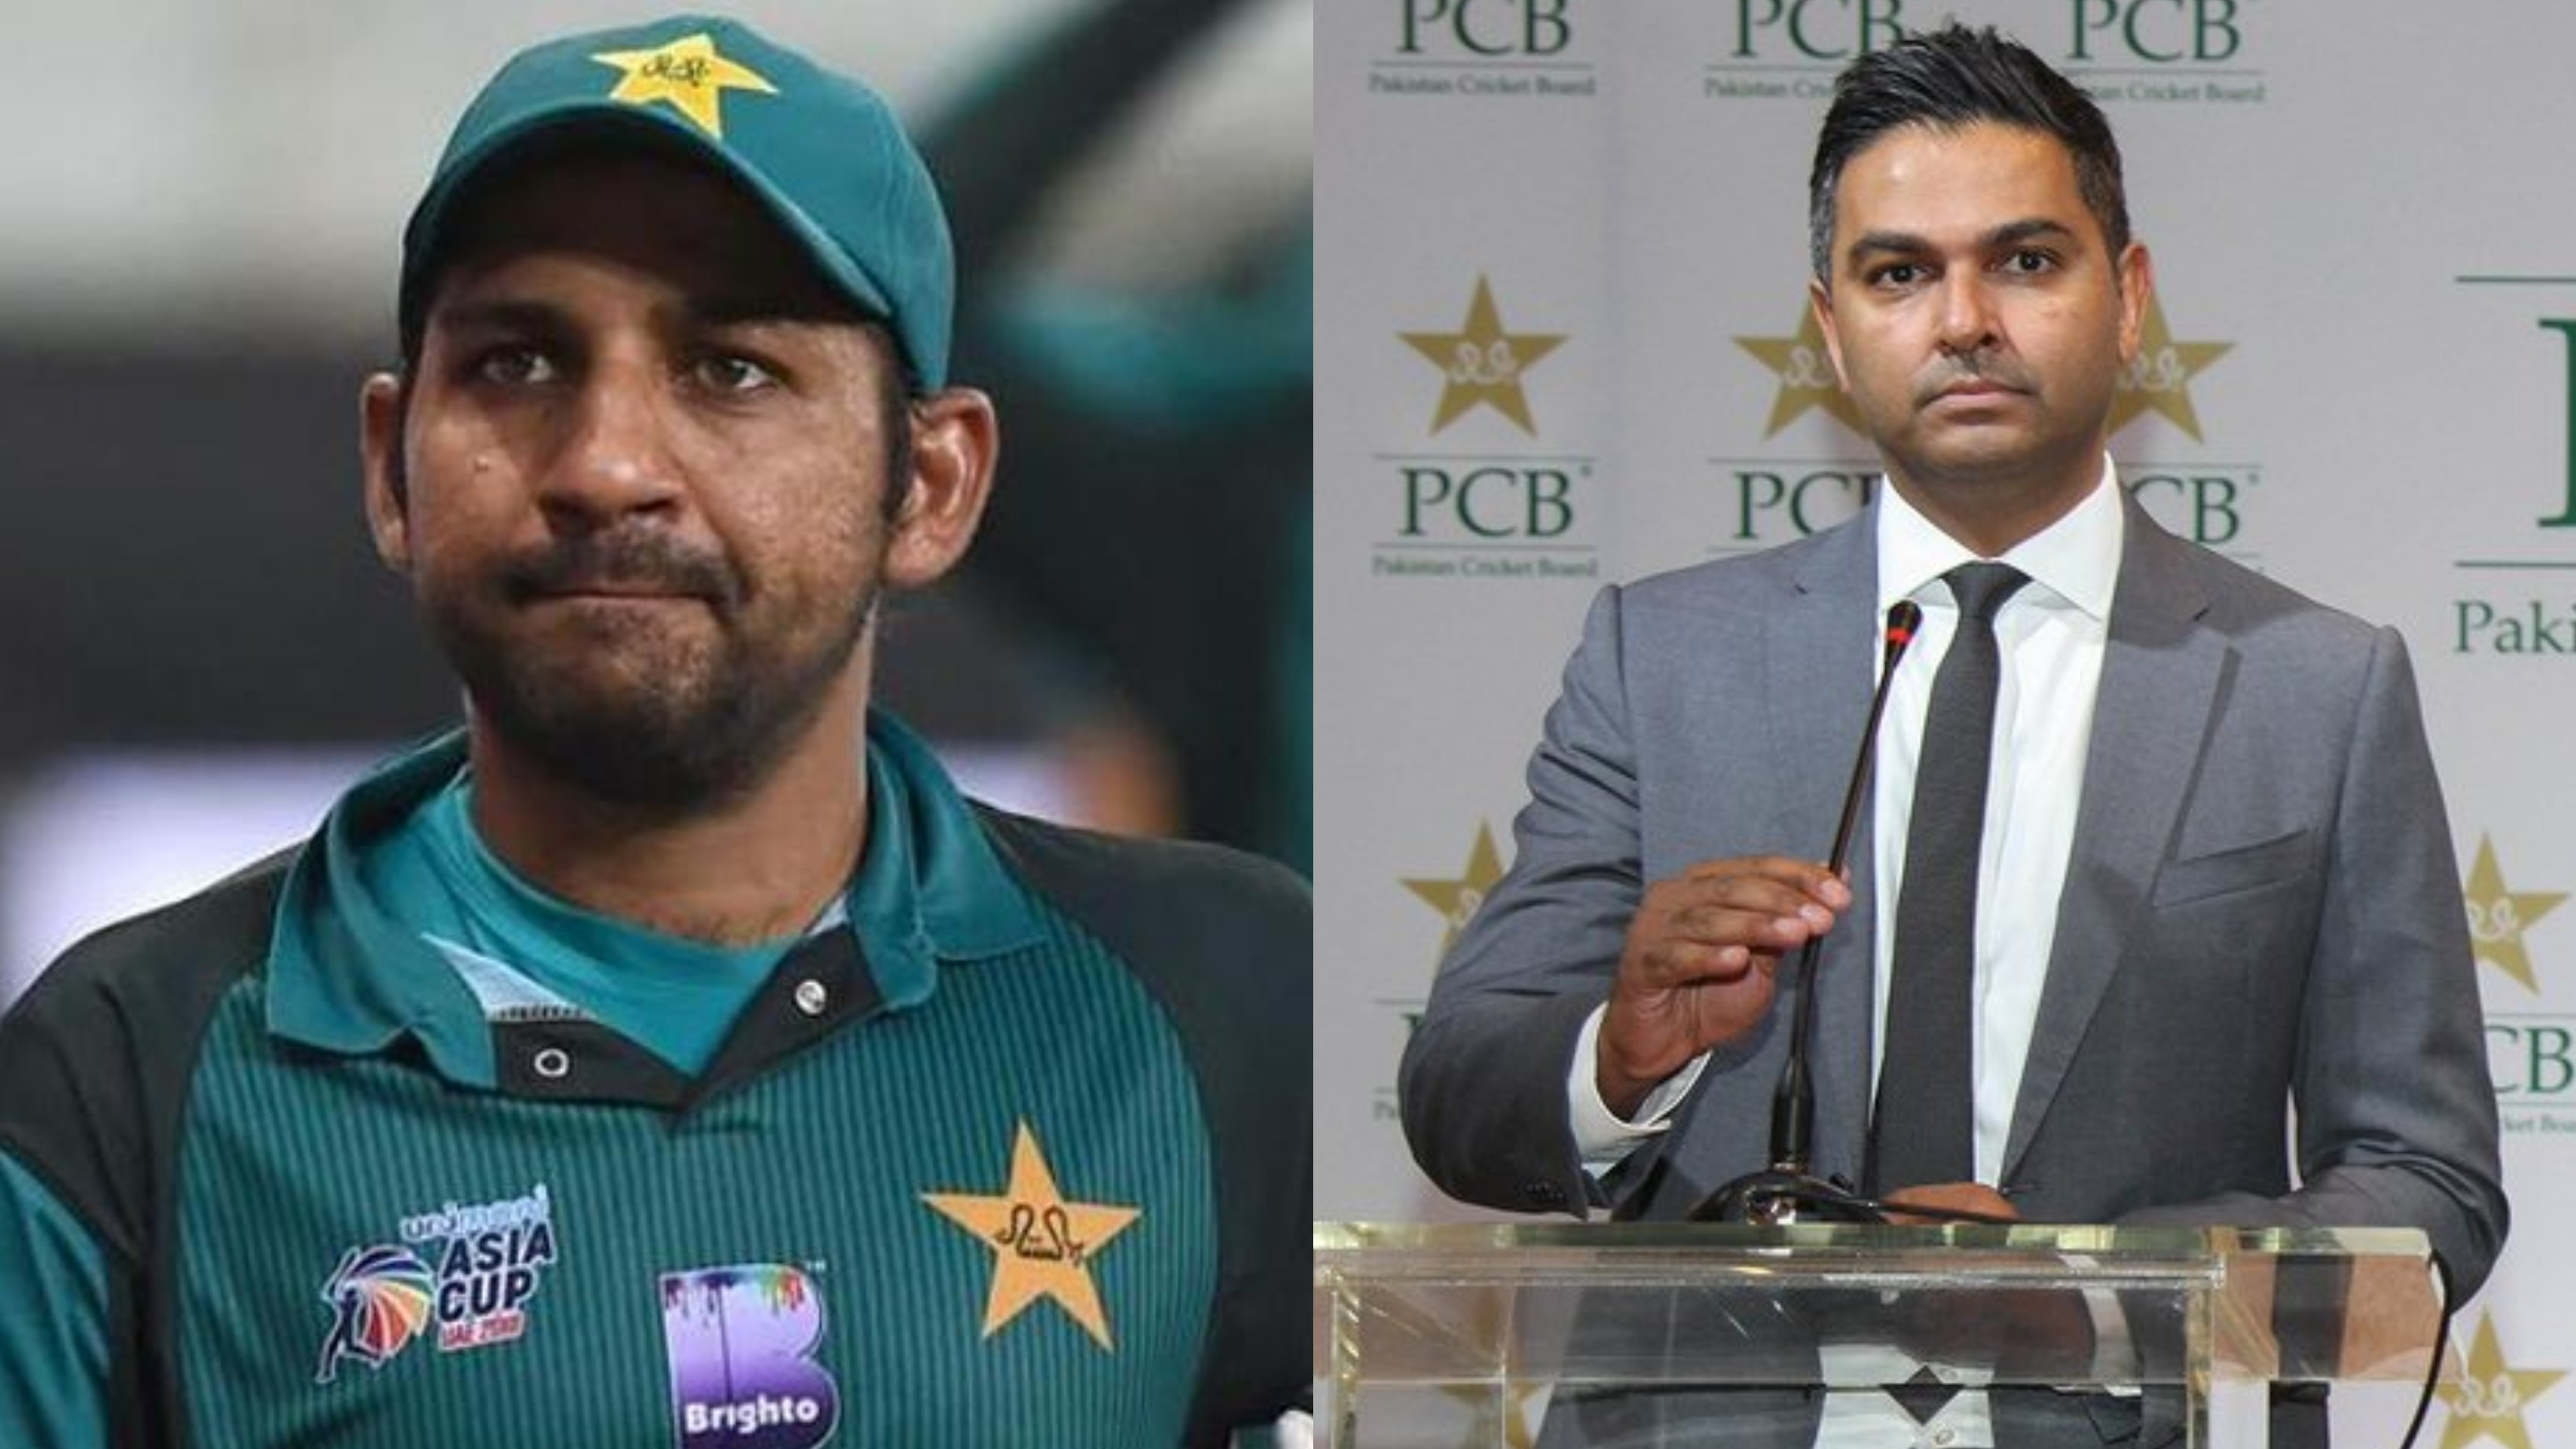 PCB had offered Sarfaraz Ahmed chance to make a graceful exit, says reports